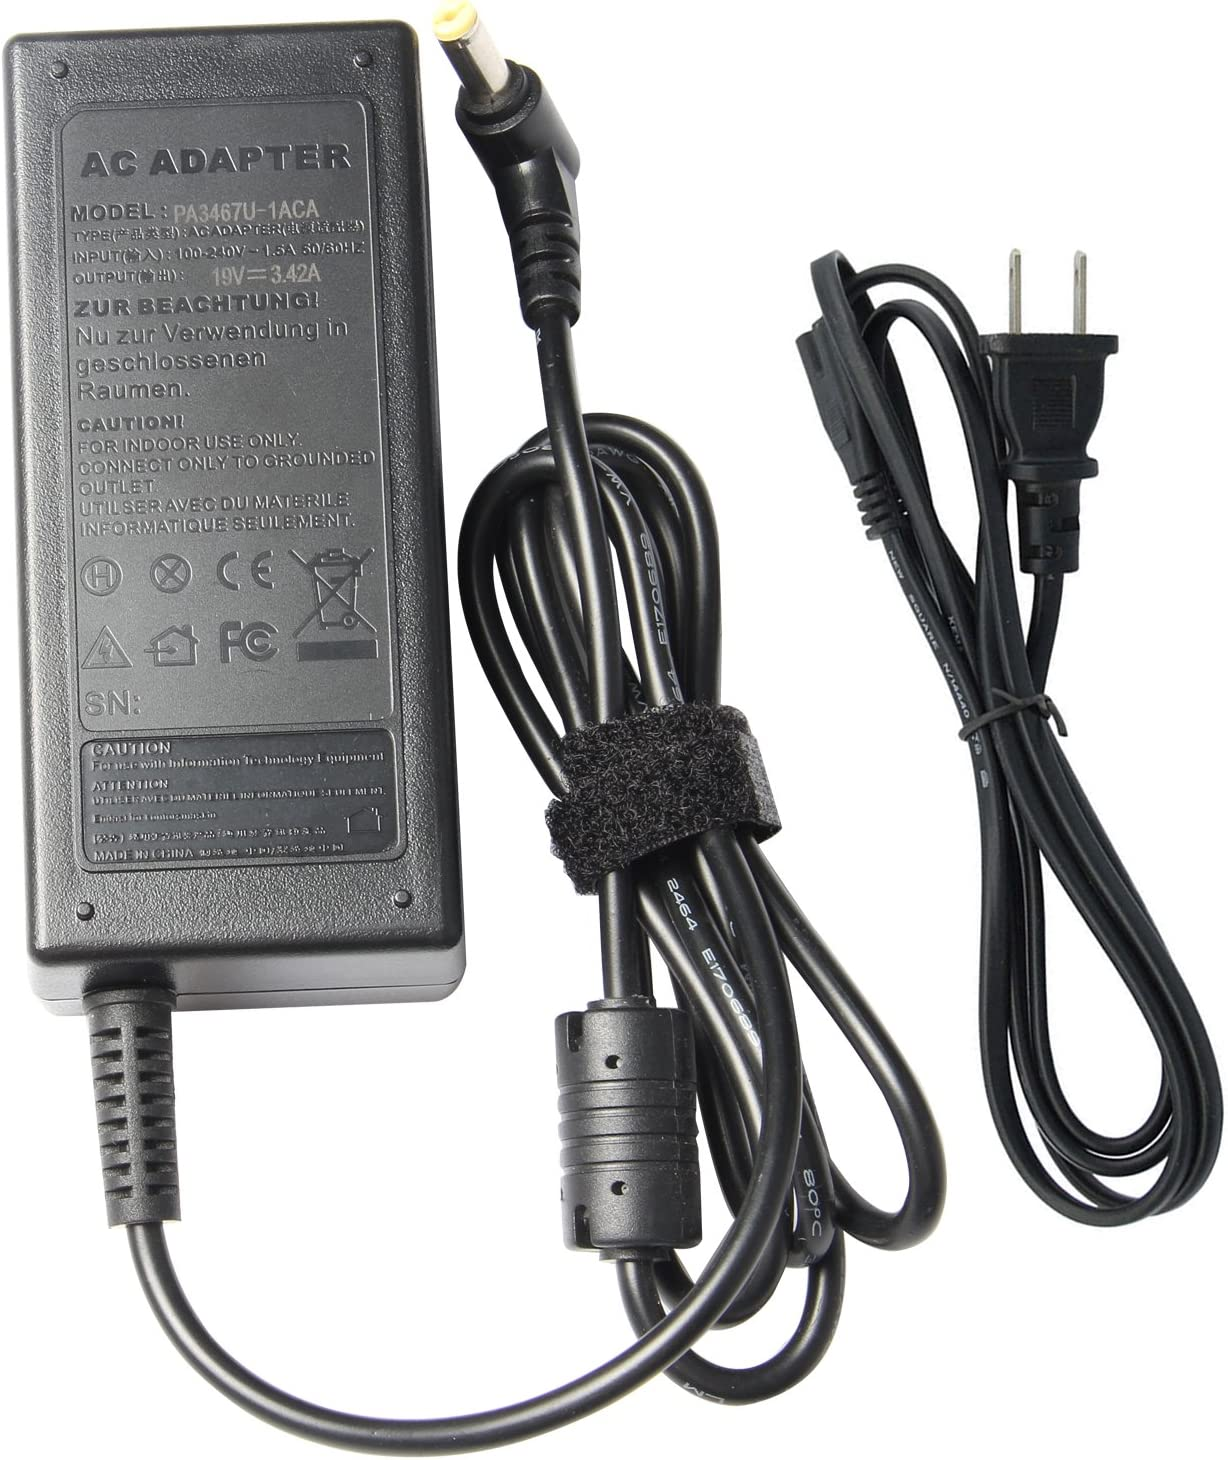 Futurebatt Ac Adapter Power Charger Cable for Acer LCD Monitor S200HQL S201HL S211HL S220HQL V195WL S230HL S241HL S242HL FT200HQL G206HL G206HQL G206HL G236HL G276HL H236HL Led Screen Supply Cord